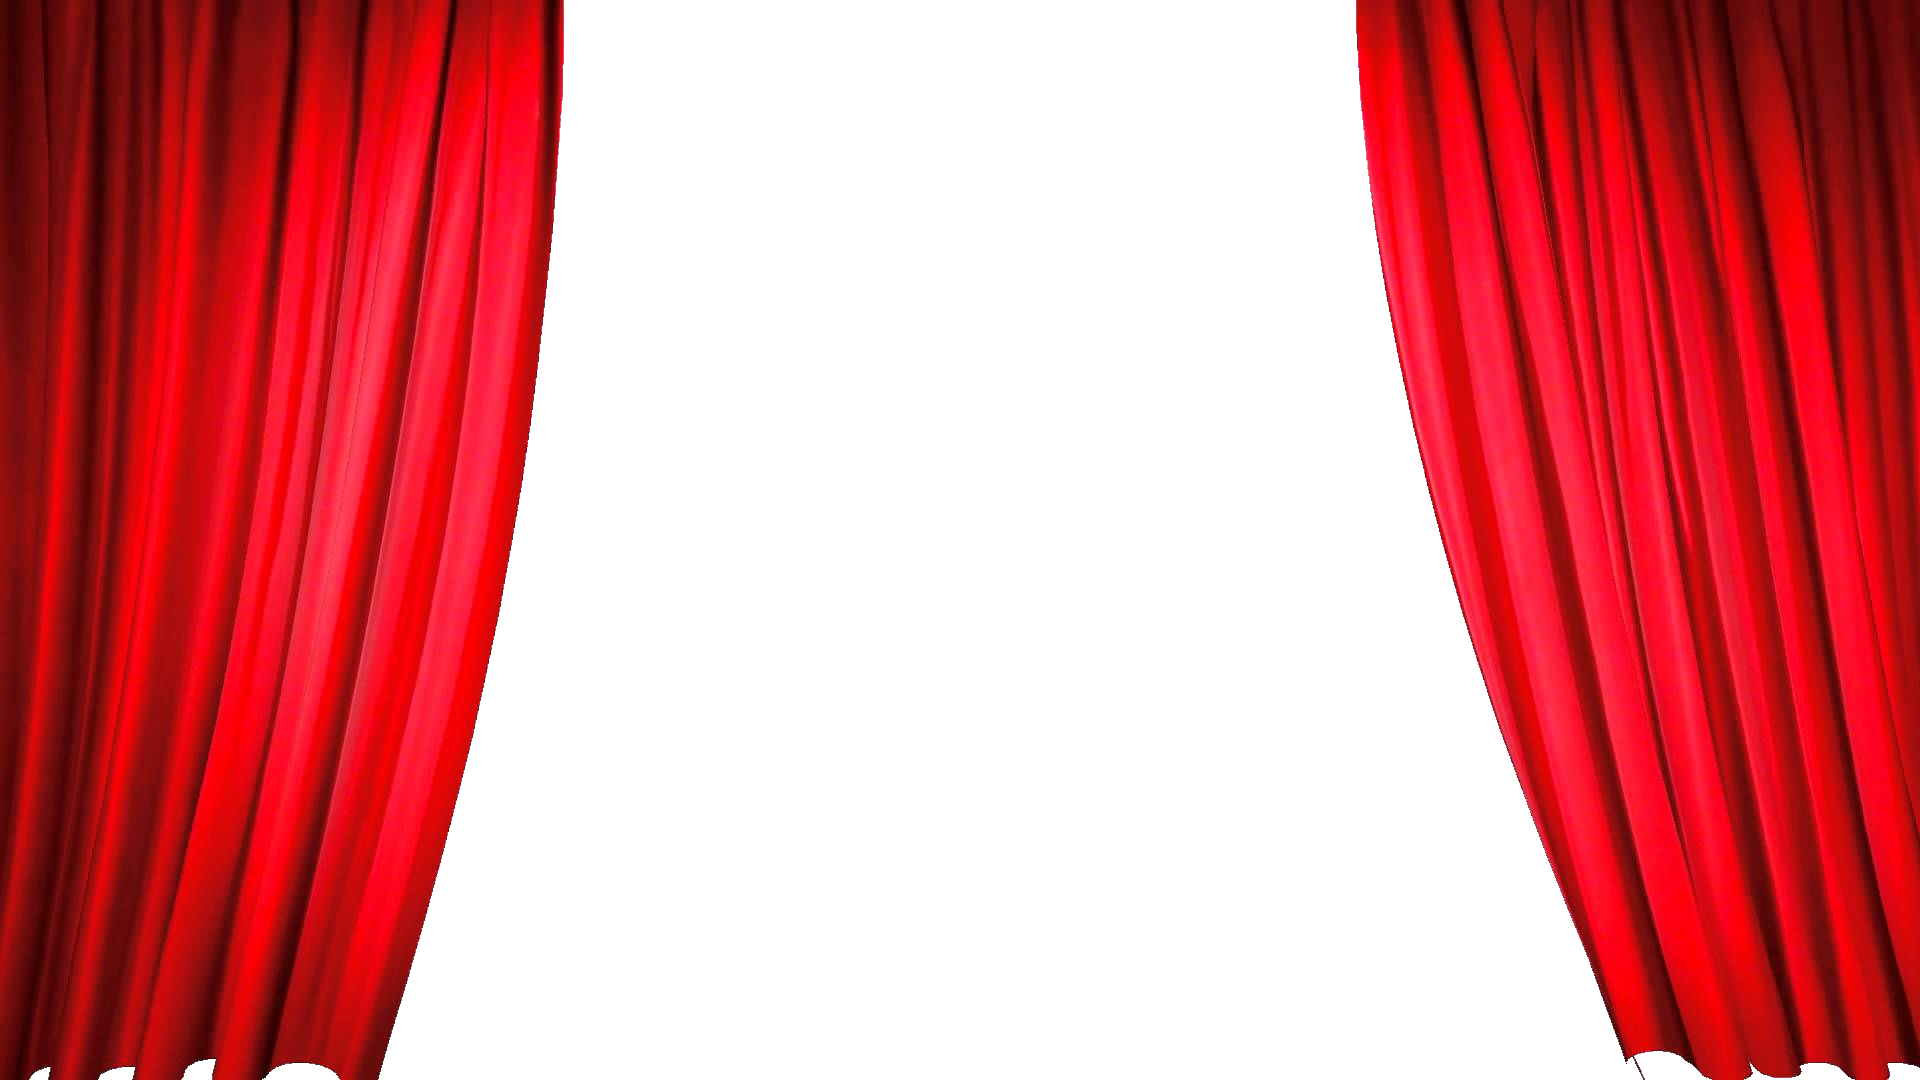 Png . Curtains clipart cloth